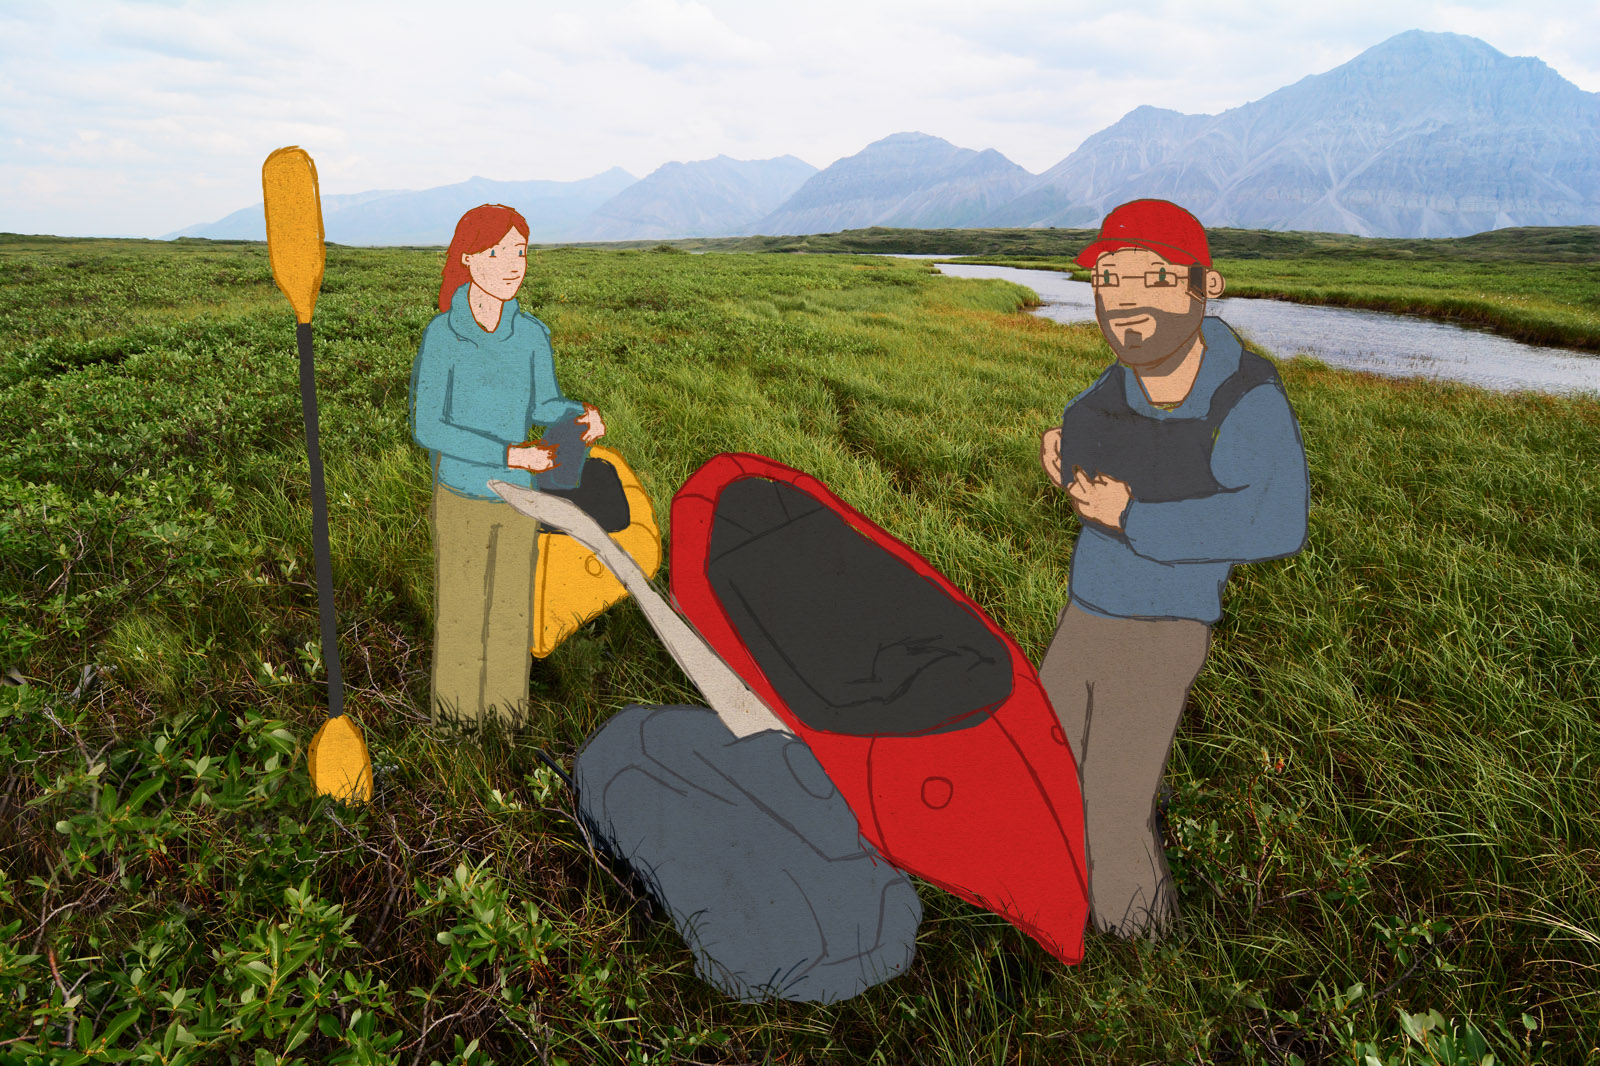 Brett and Chelsea inflate their Alpacka packrafts on the shore of a lake in the Brooks Range, in Gates of the Arctic National Park, Alaska